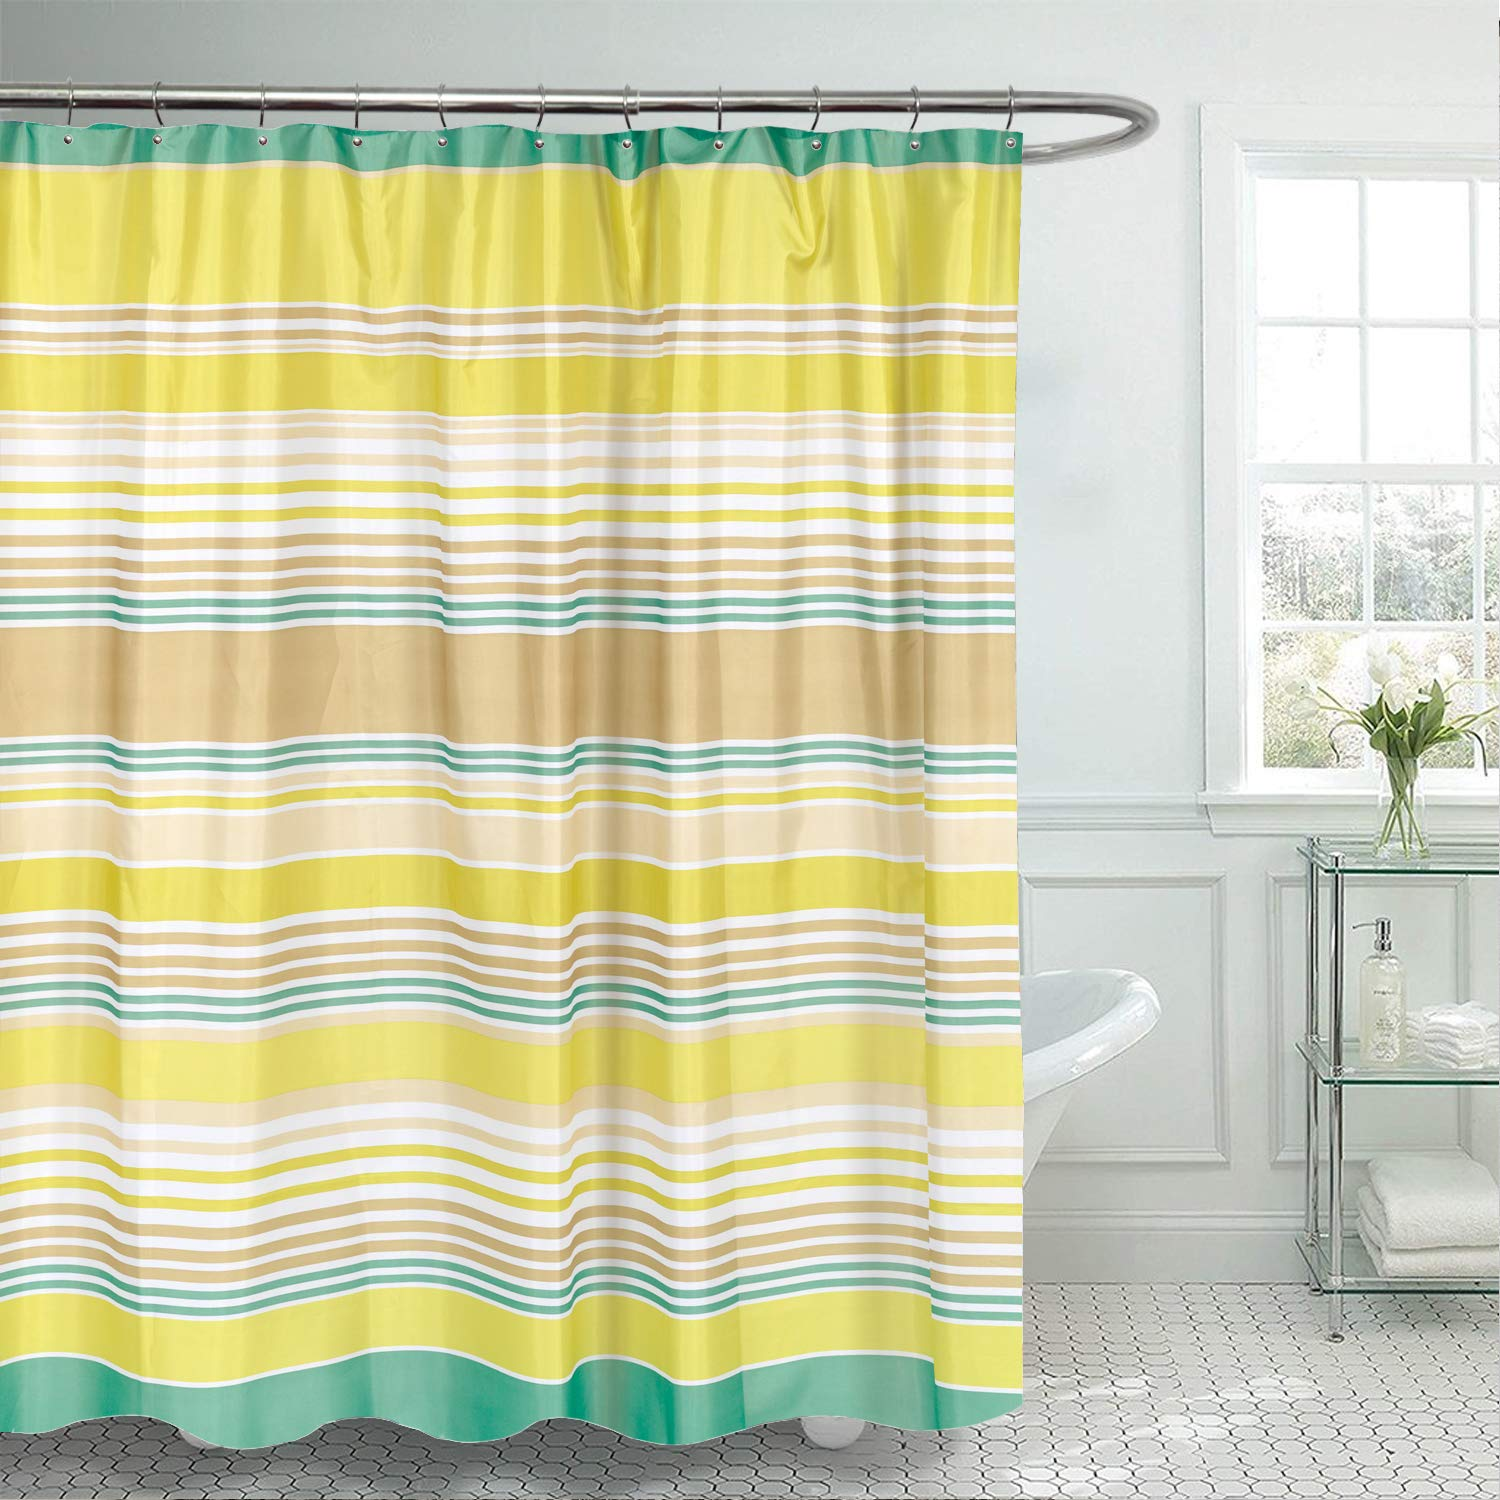 Easy Hang Fun Designs for Shower Stalls /& Bathtubs Extra Wide Multi Water Resistant Machine Washable Fabric Anti-Mildew Material Sweet Home Collection Curtain